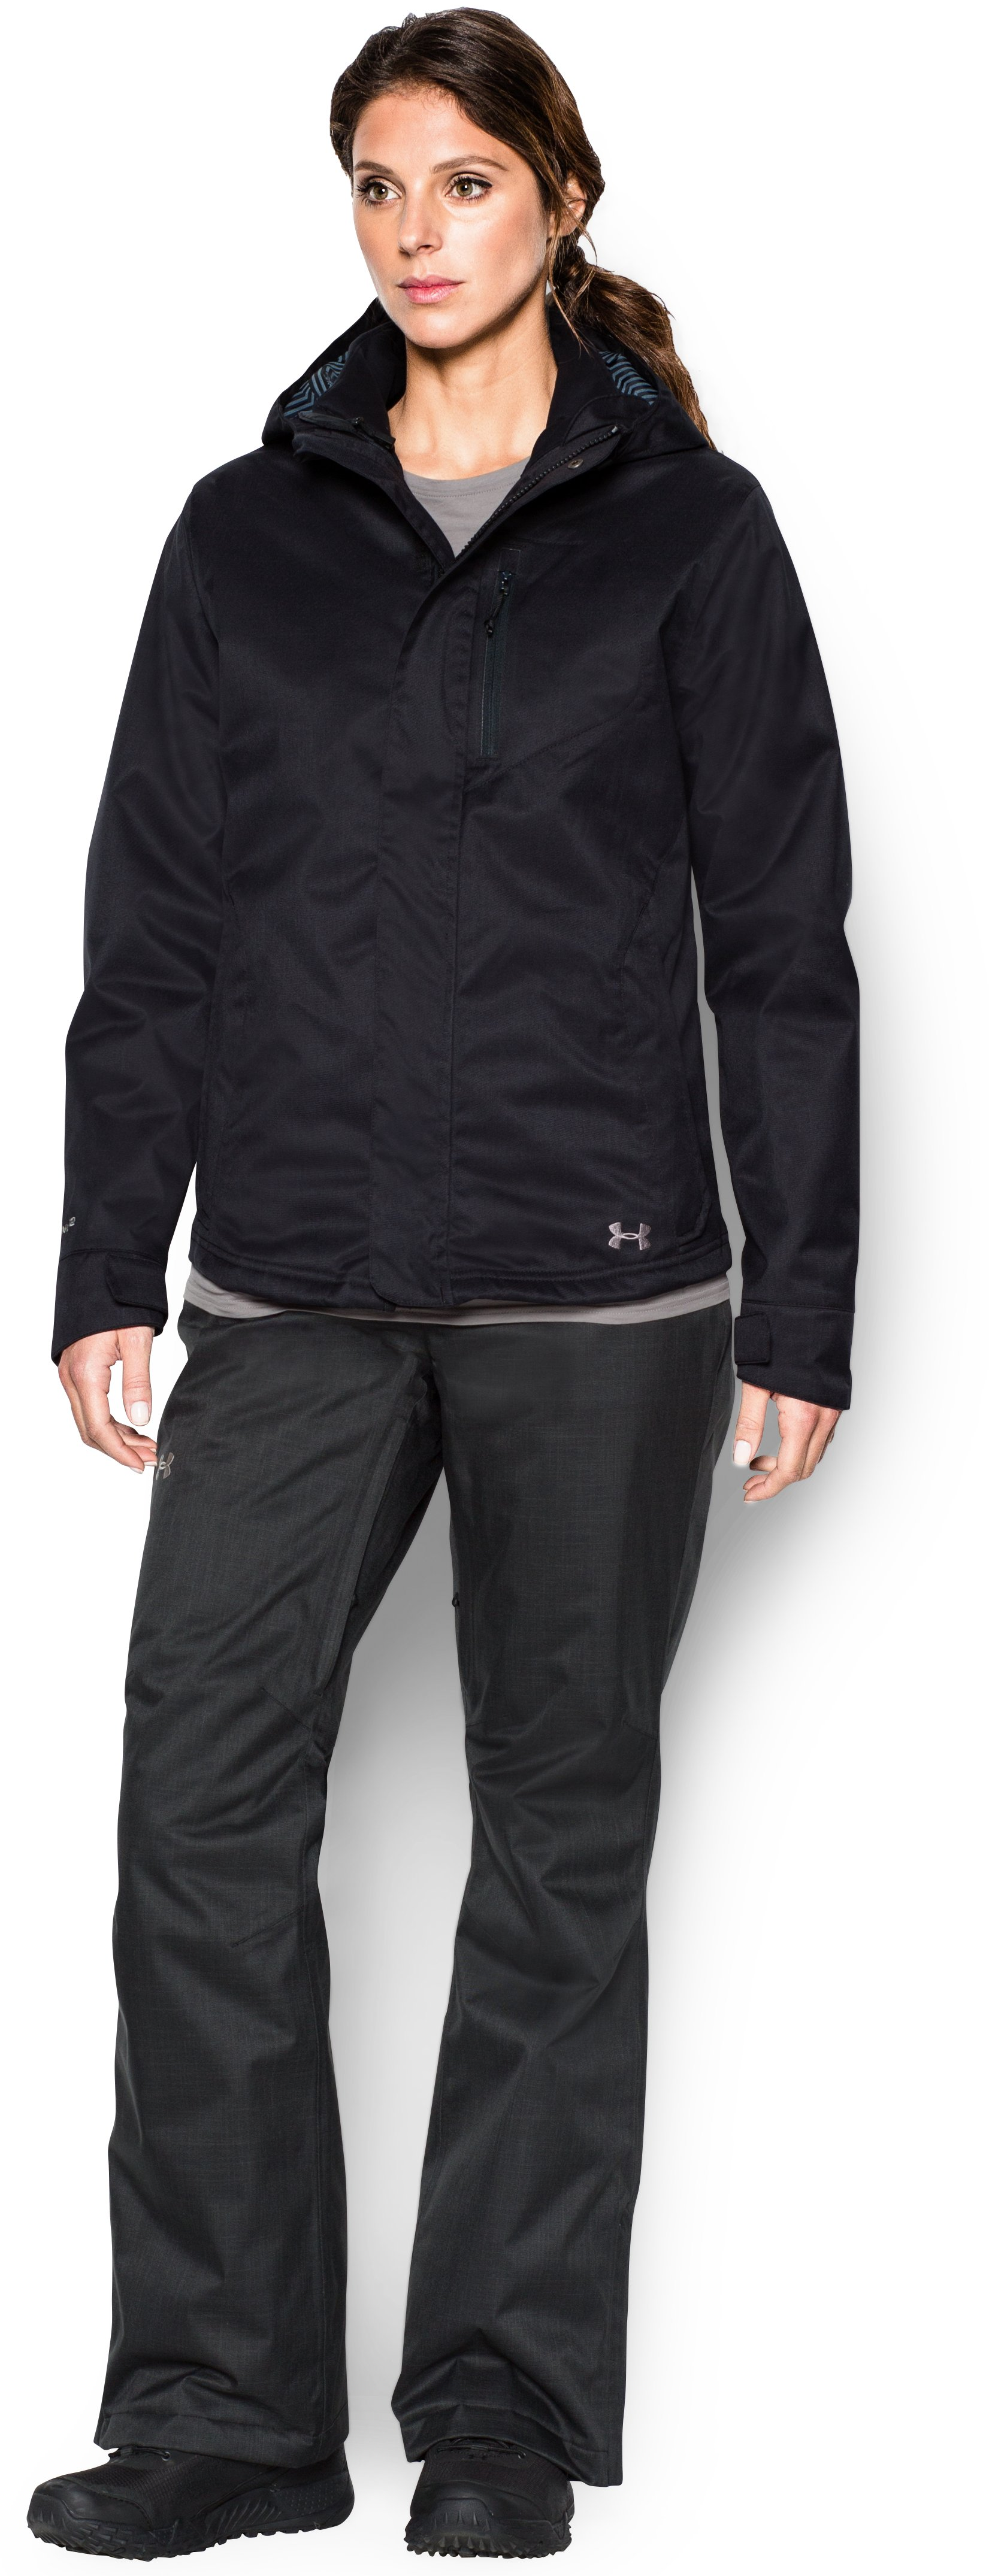 Women's Jackets on Sale | Under Armour US